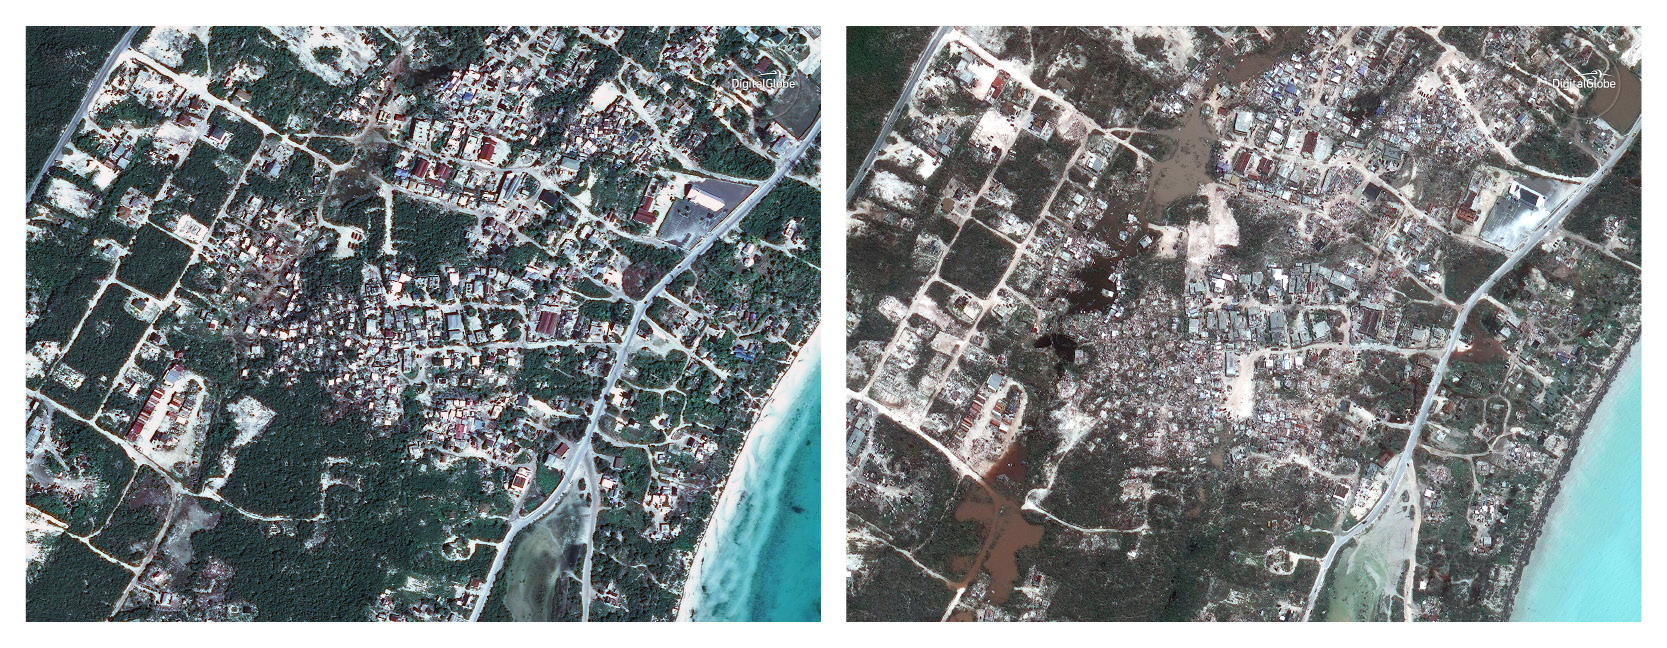 This combination of satellite images provided by DigitalGlobe shows Providenciales, in Turks and Caicos Islands on Jan 1, 2016, and Sunday, Sept. 10, 2017, after Hurricane Irma. Irma cut a path of devastation across the northern Caribbean, leaving thousands homeless after destroying buildings and uprooting trees. (DigitalGlobe via AP)